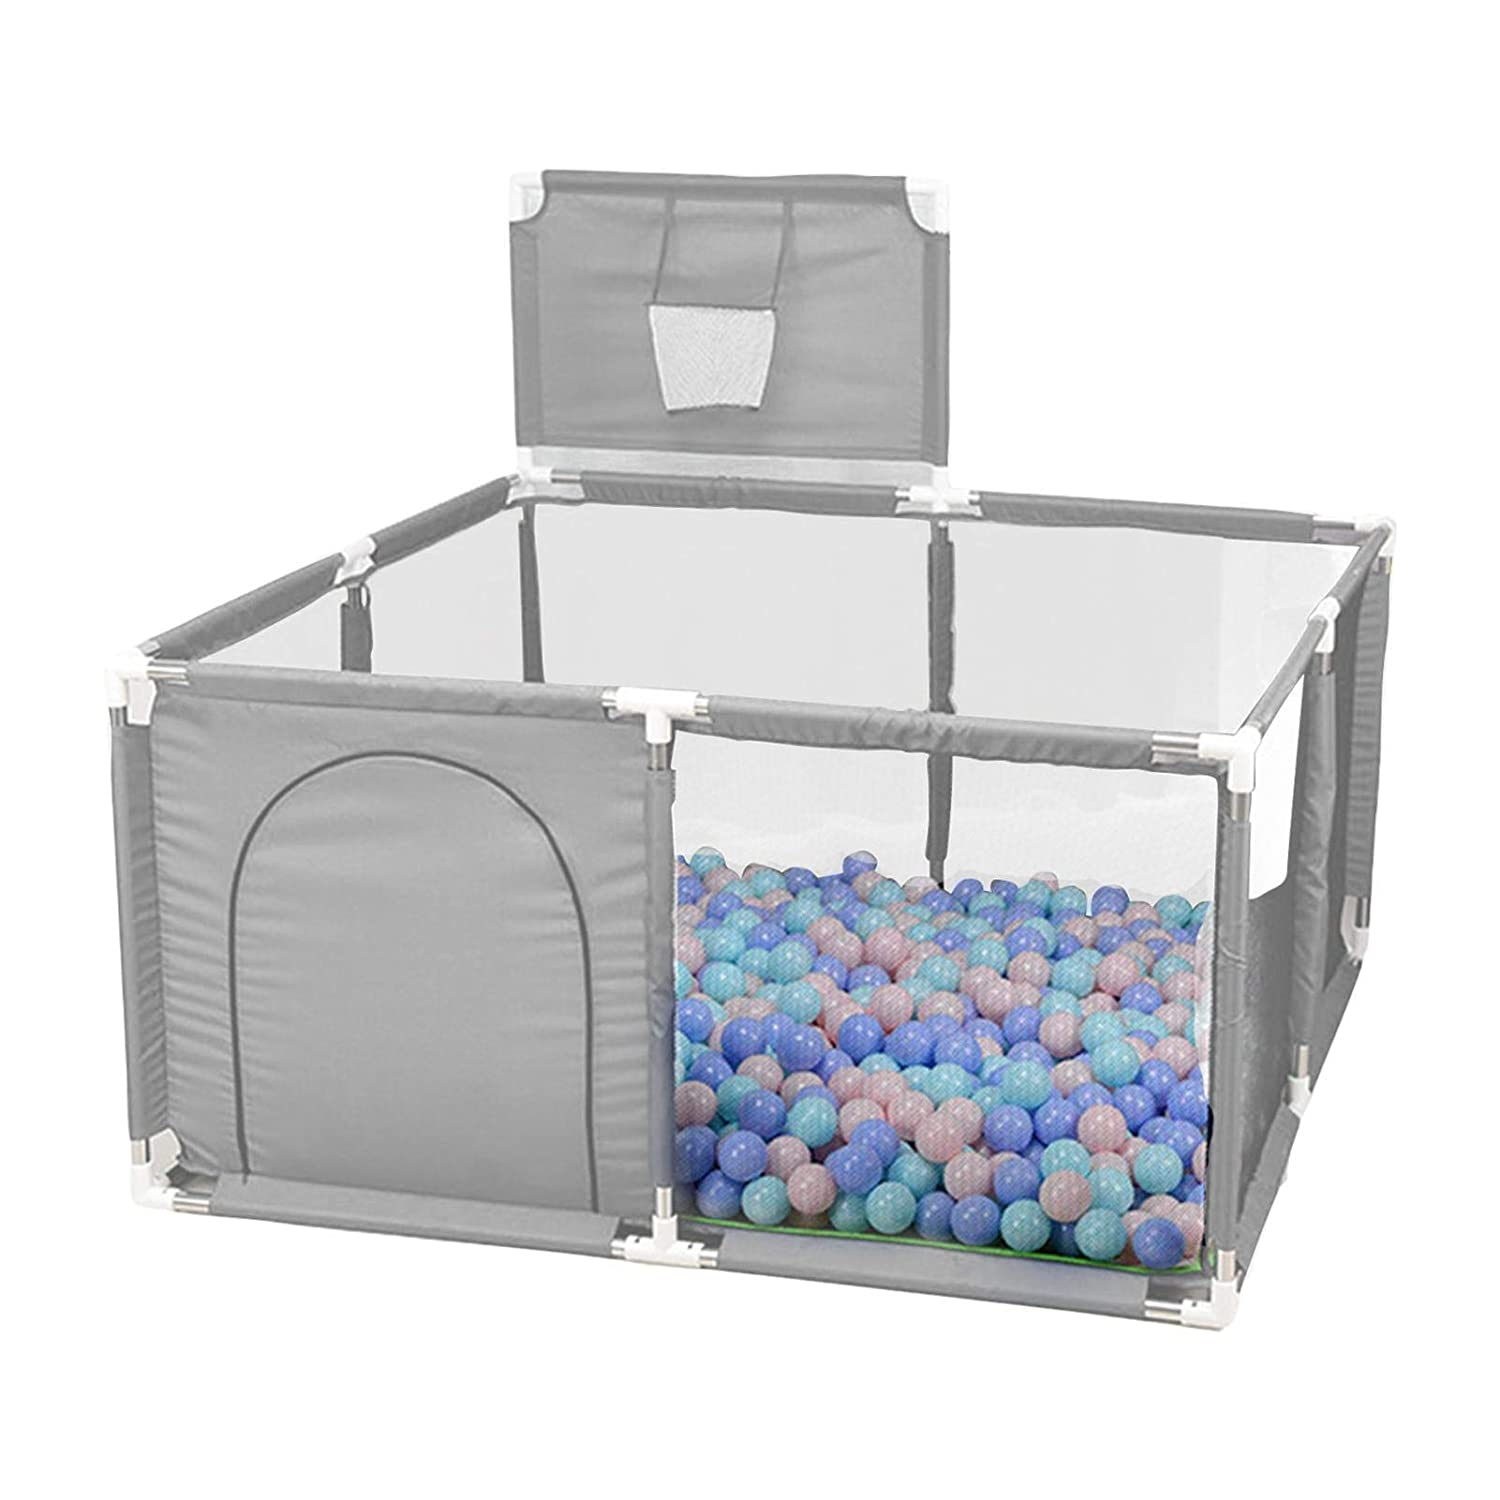 Outstanding Baby Playpen Portable Extra Large New product!! Basketbal Mesh Fence with